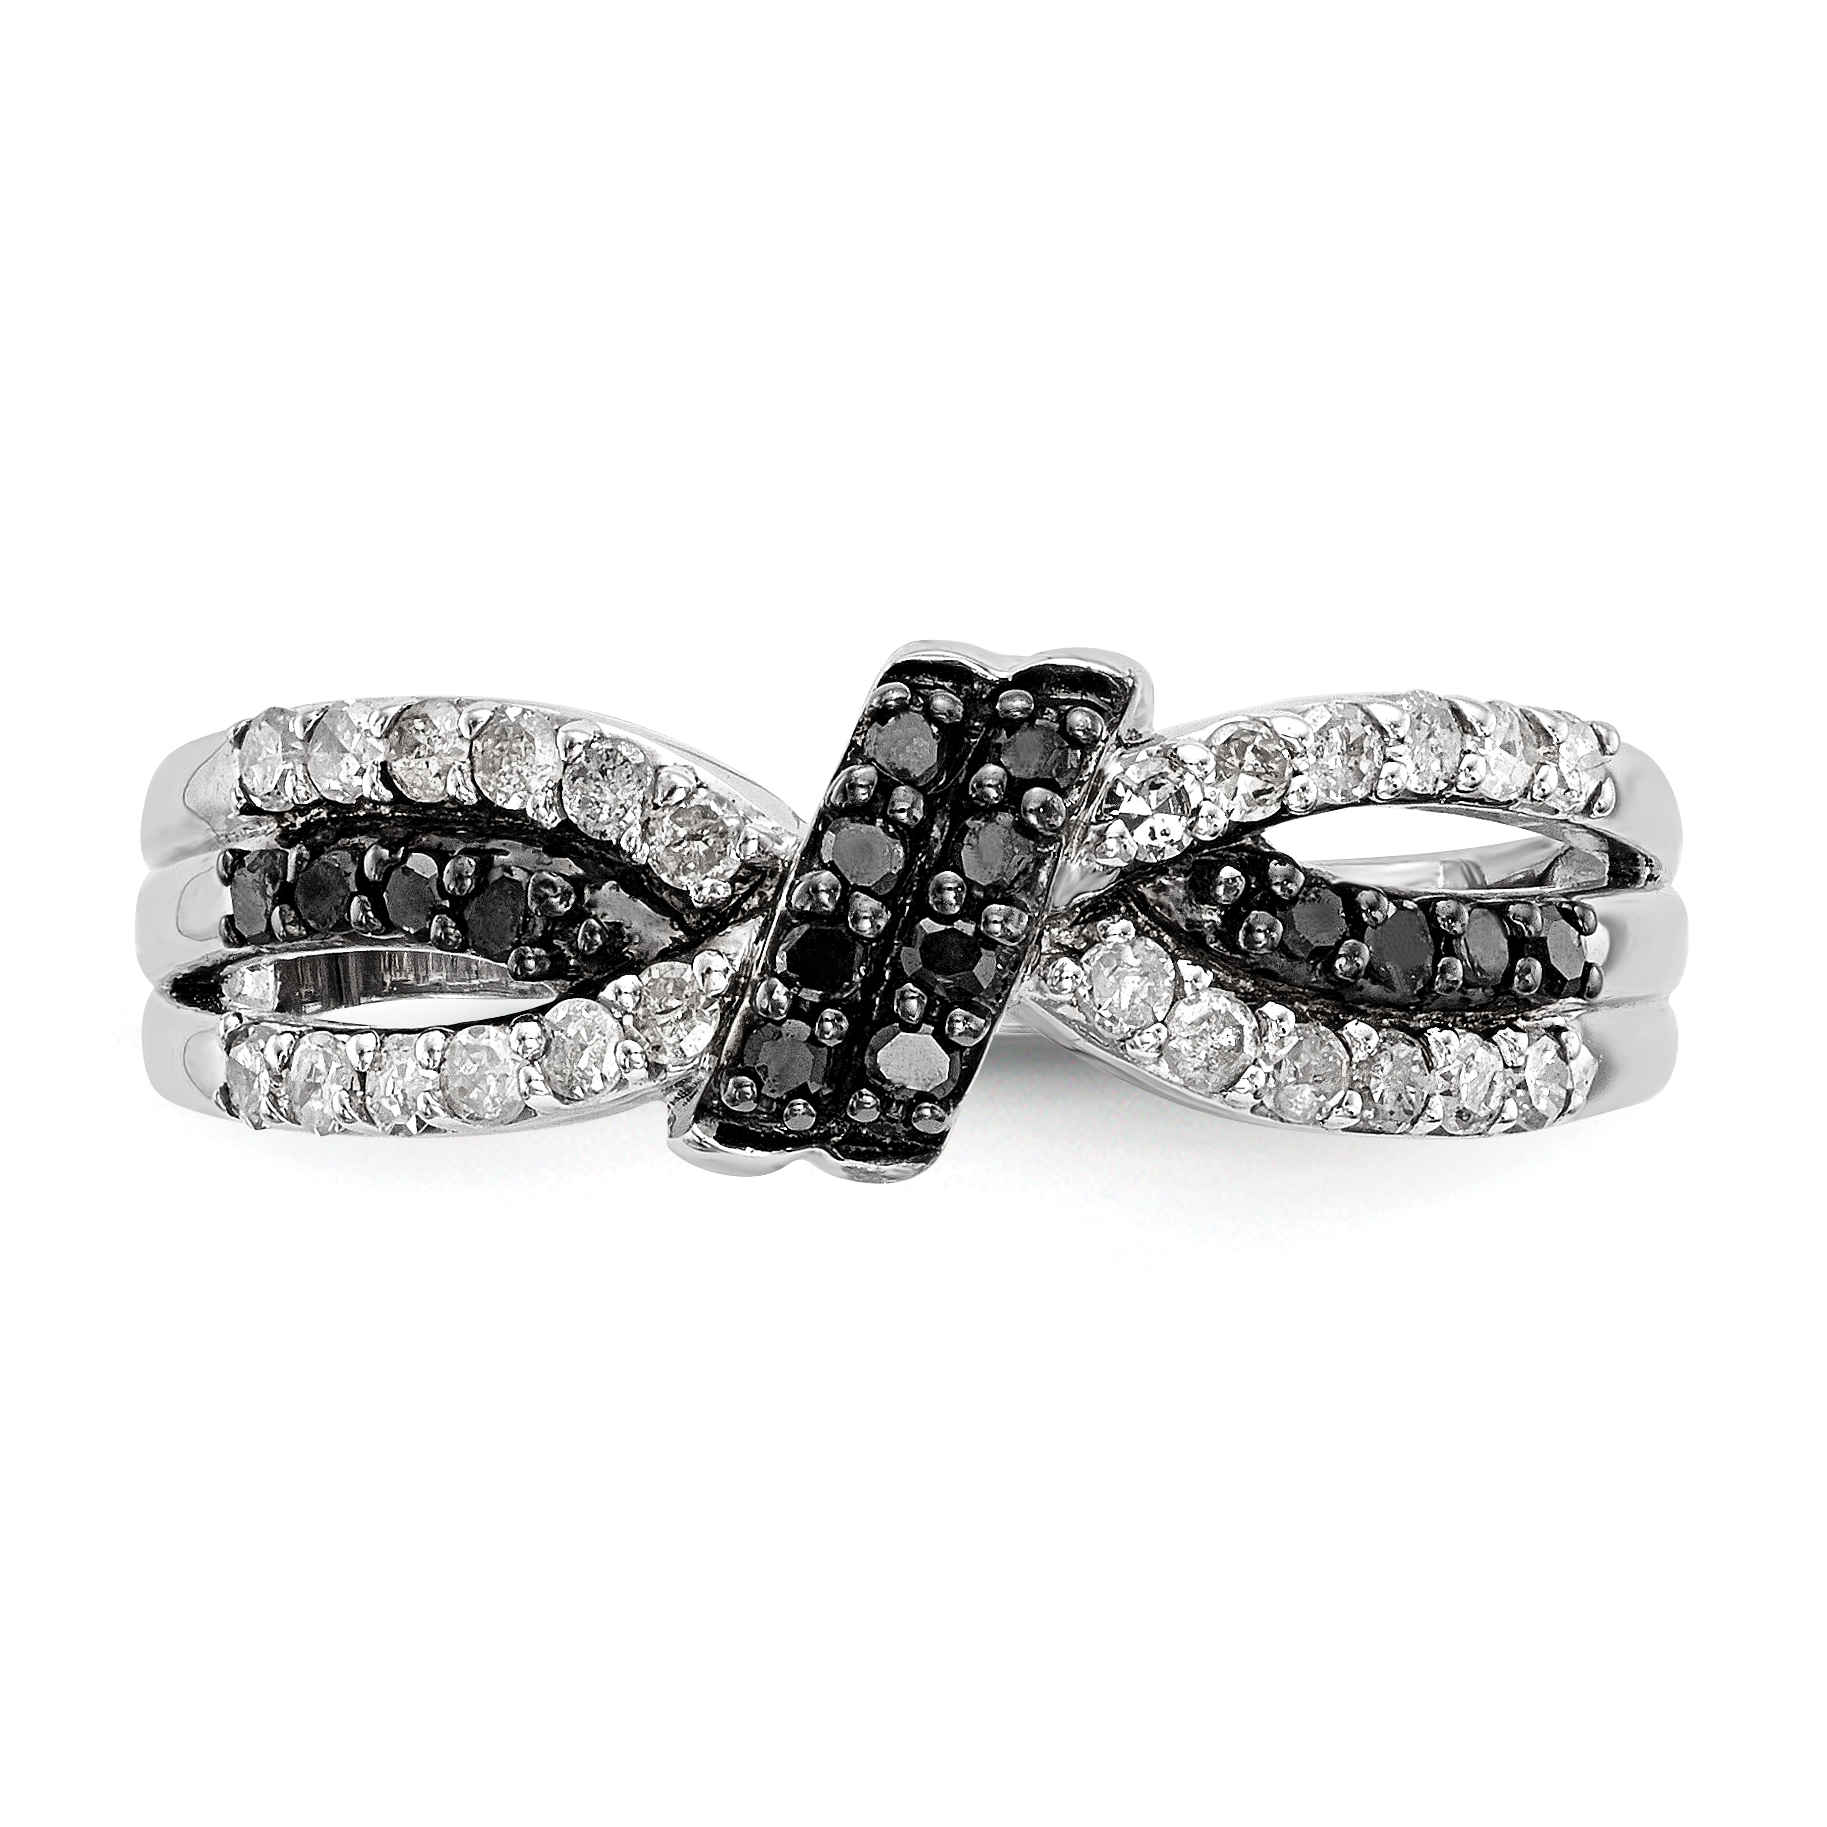 925 Sterling Silver Black White Diamond Band Ring Size 6.00 Fine Jewelry Gifts For Women For Her - image 5 de 6